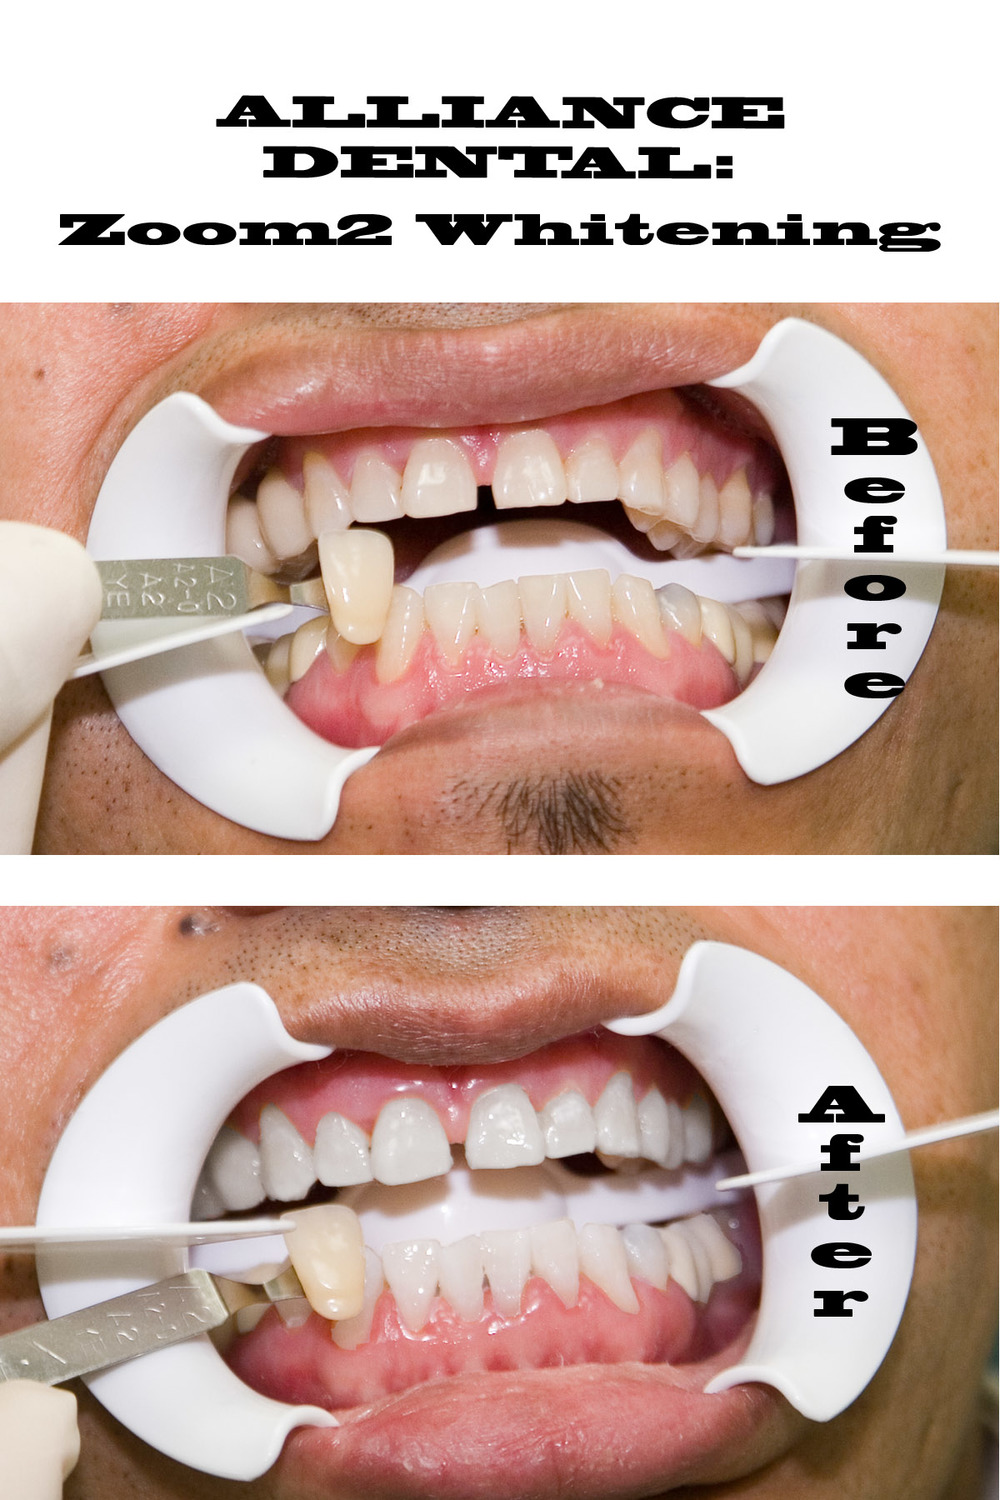 Zoom Advanced Whitening Results at Alliance Dental Center